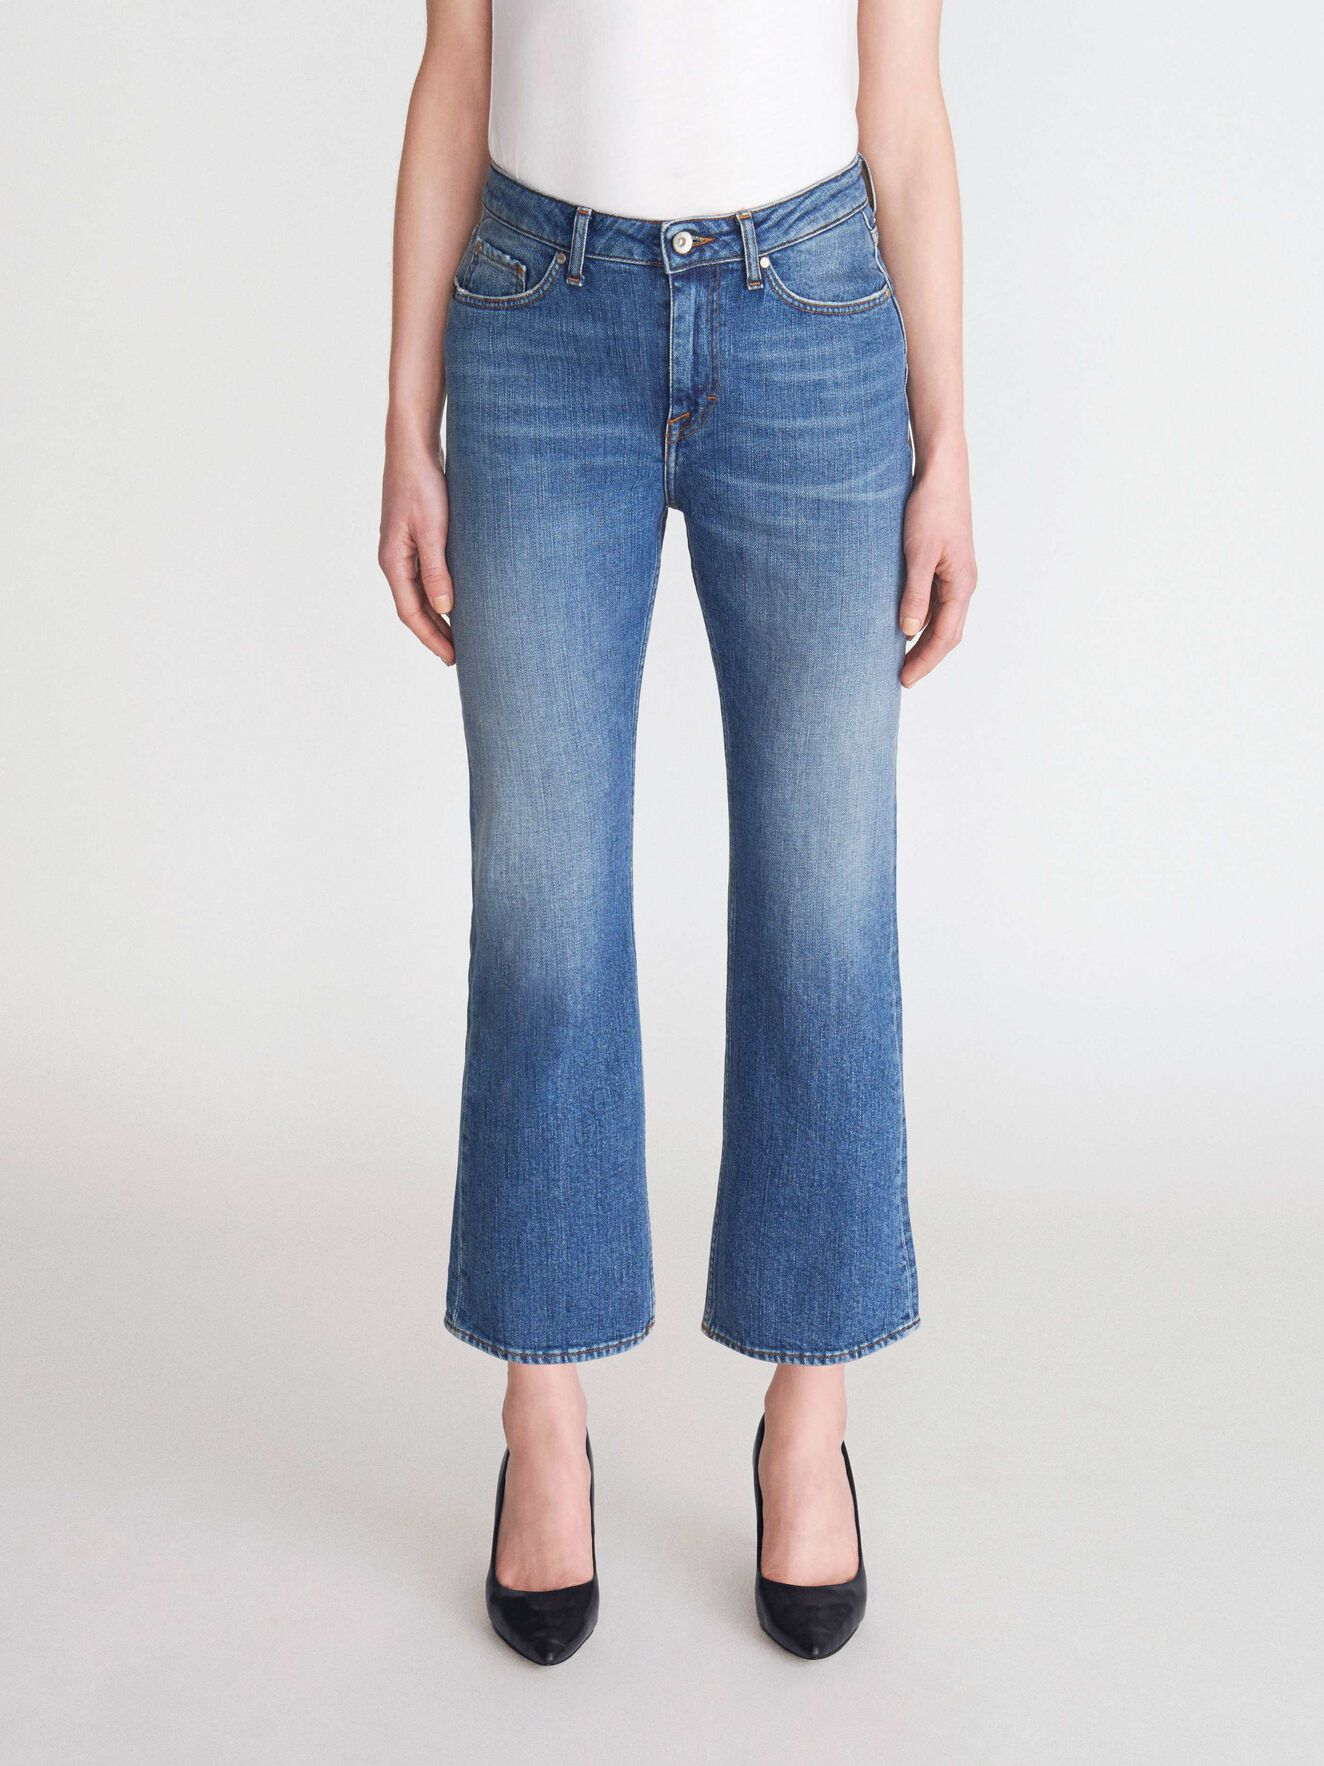 Aze Jeans in Medium Blue from Tiger of Sweden